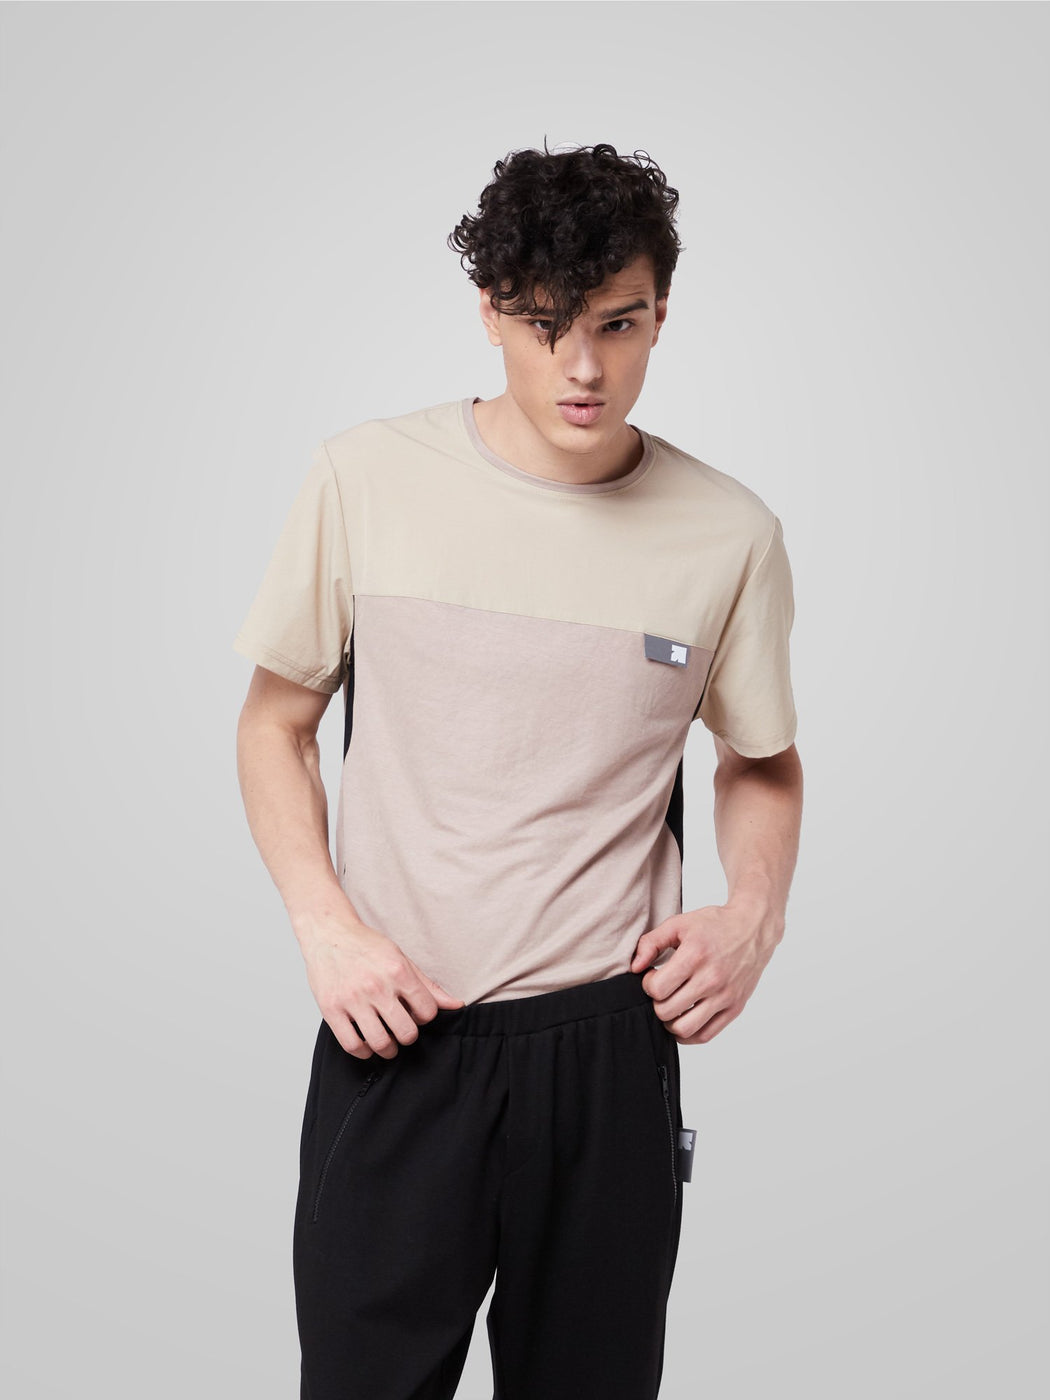 Unisex Ultimate Utilitarian Beige Male T-shirt